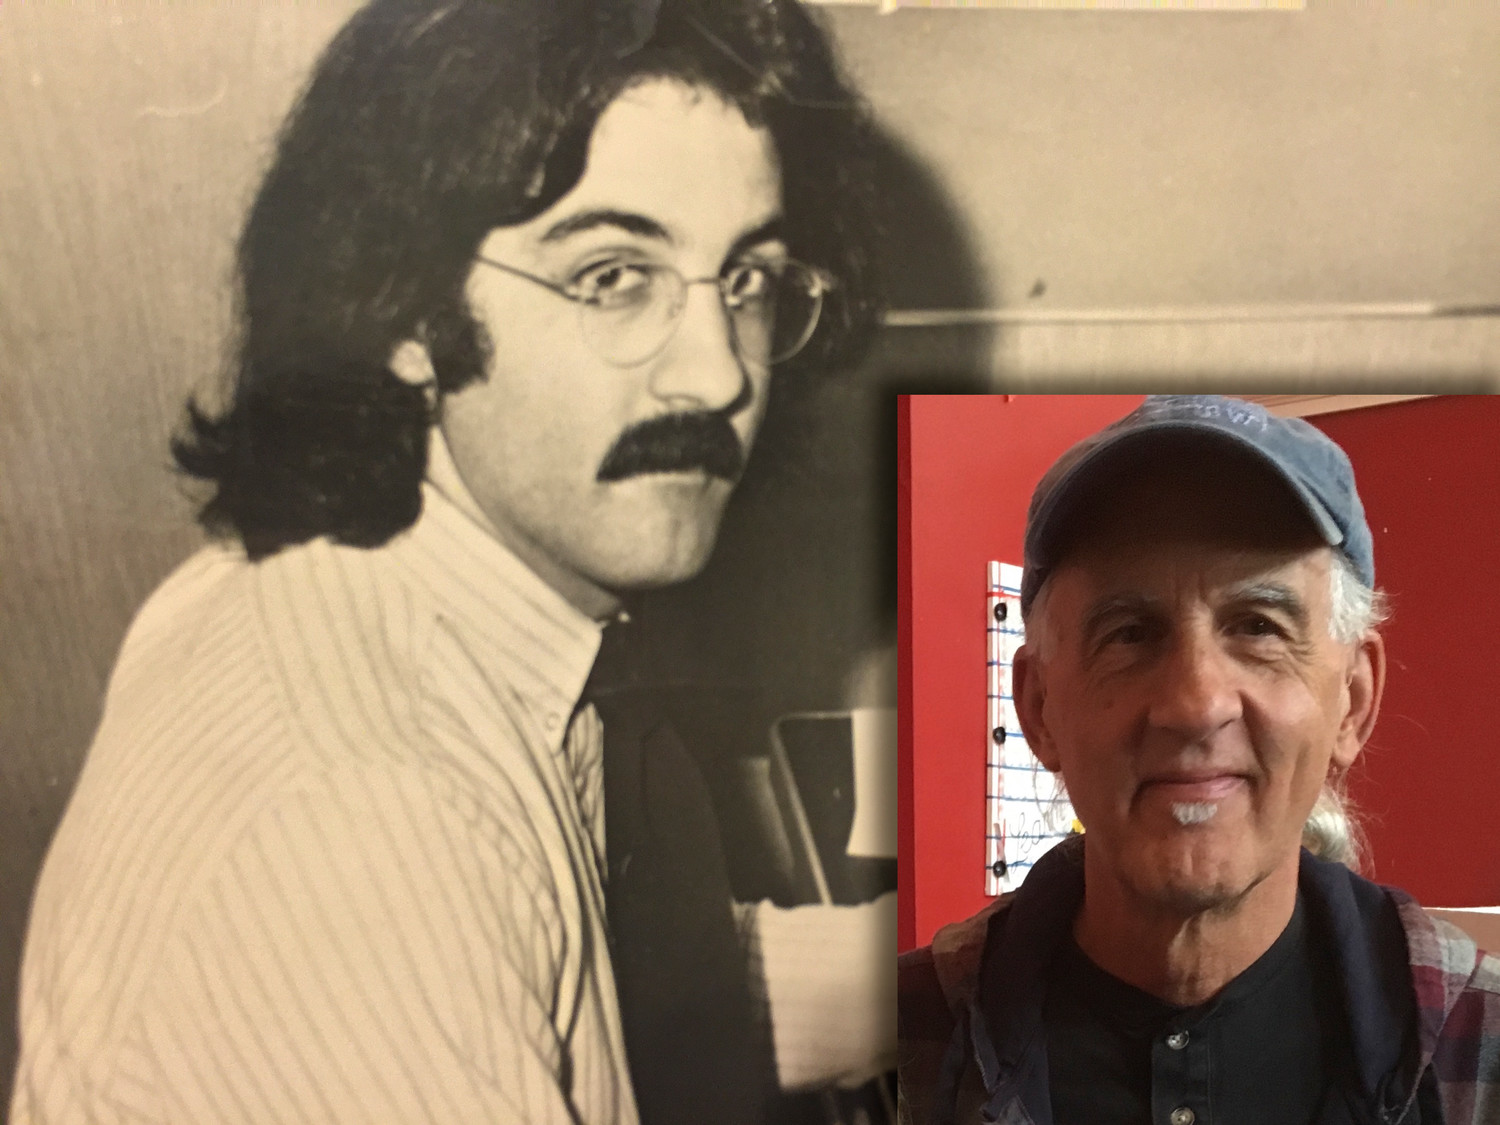 Thom Ruckert began teaching at Glen Cove High School when he was 24. He was considered cool, and people saw him that way throughout his life.